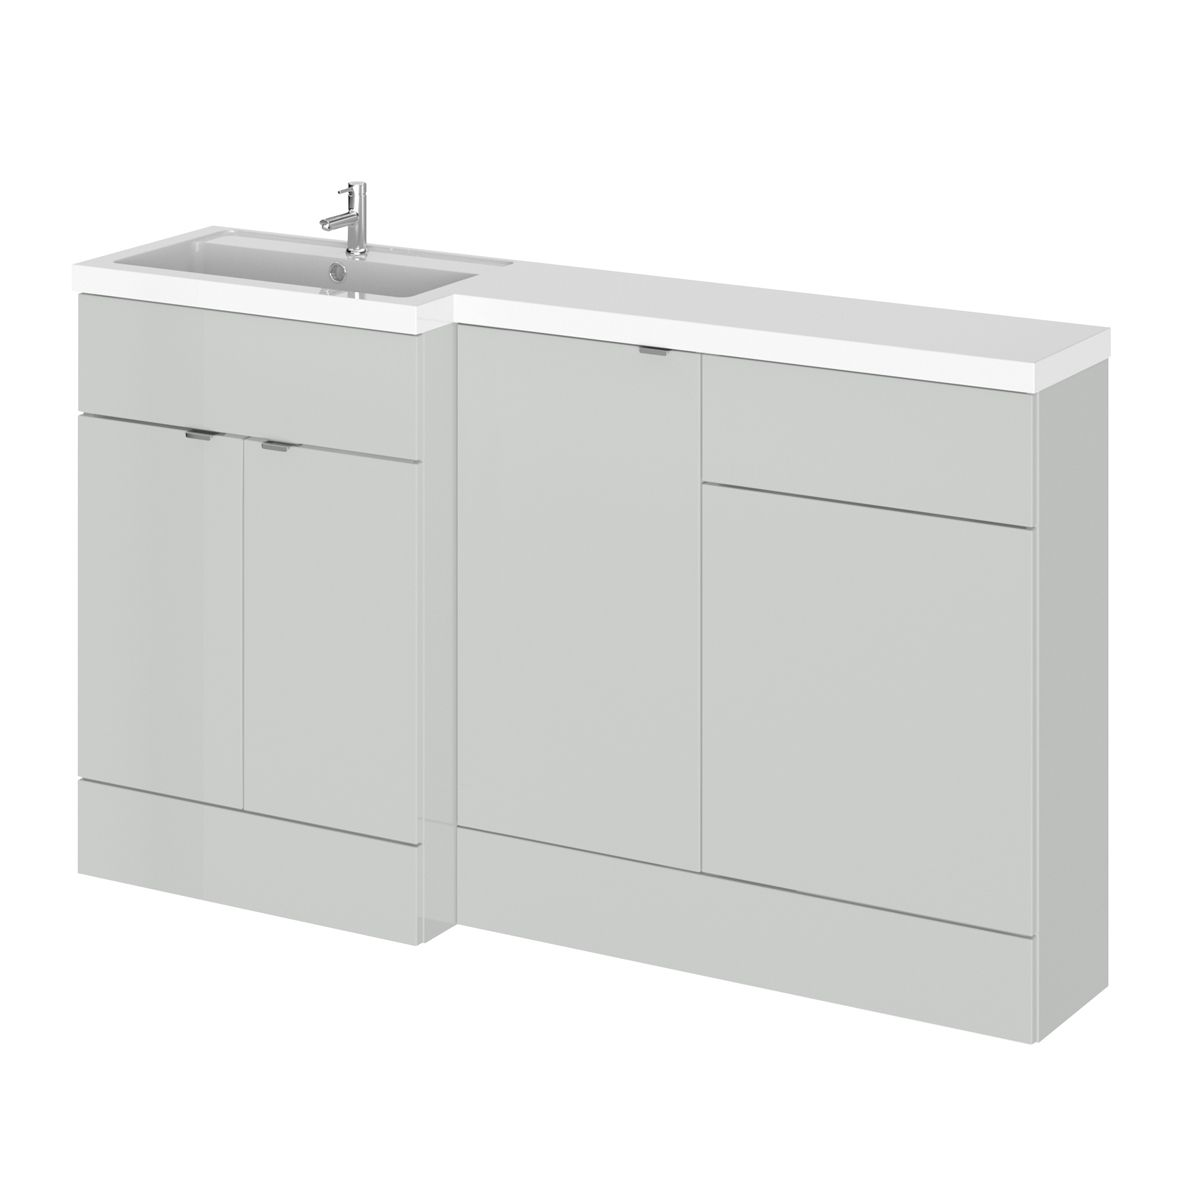 Hudson Reed Fusion Gloss Grey Mist Full Depth Combination Furniture Pack 1500mm Left Hand